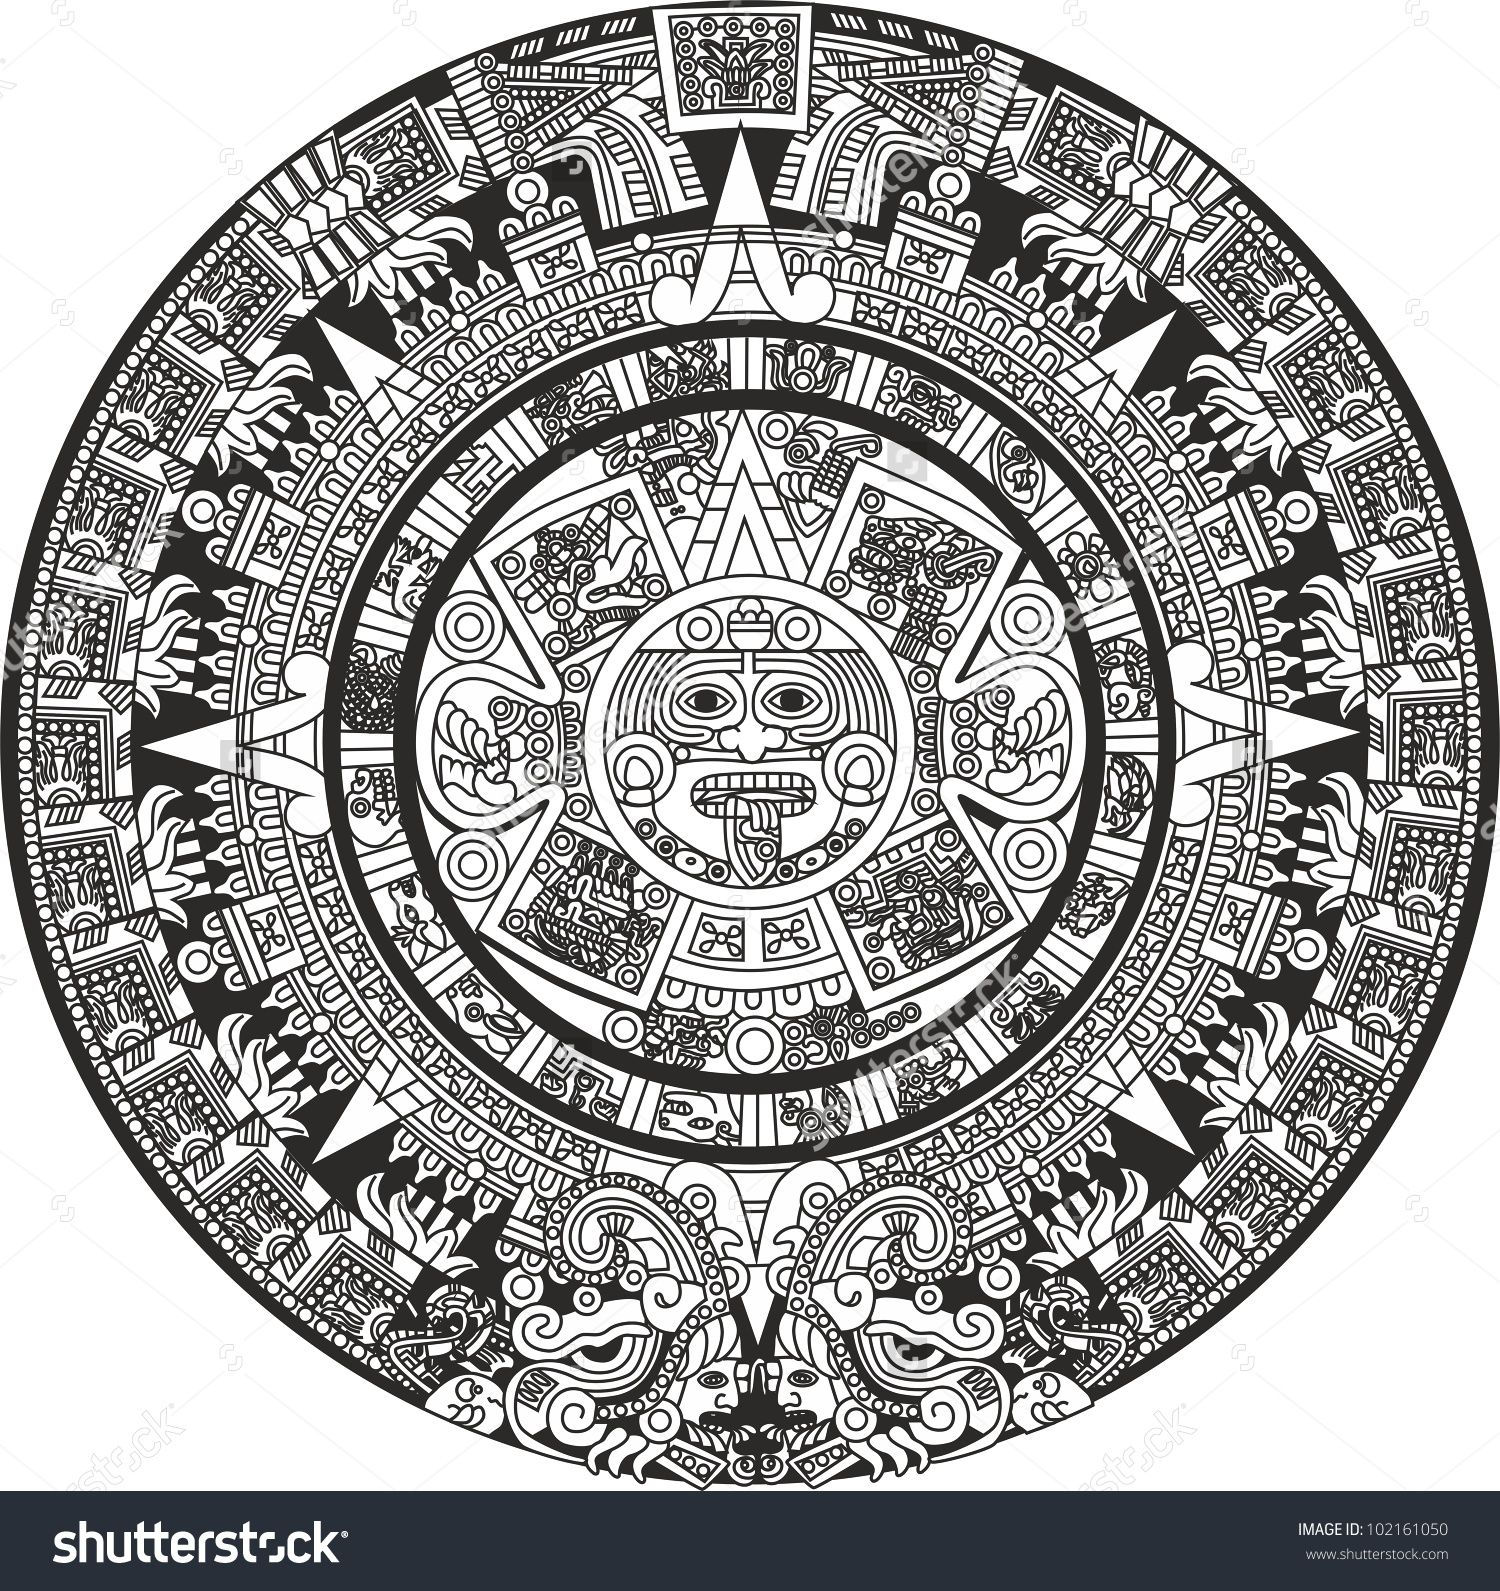 Mayan Calendar Preview Save To A Lightbox